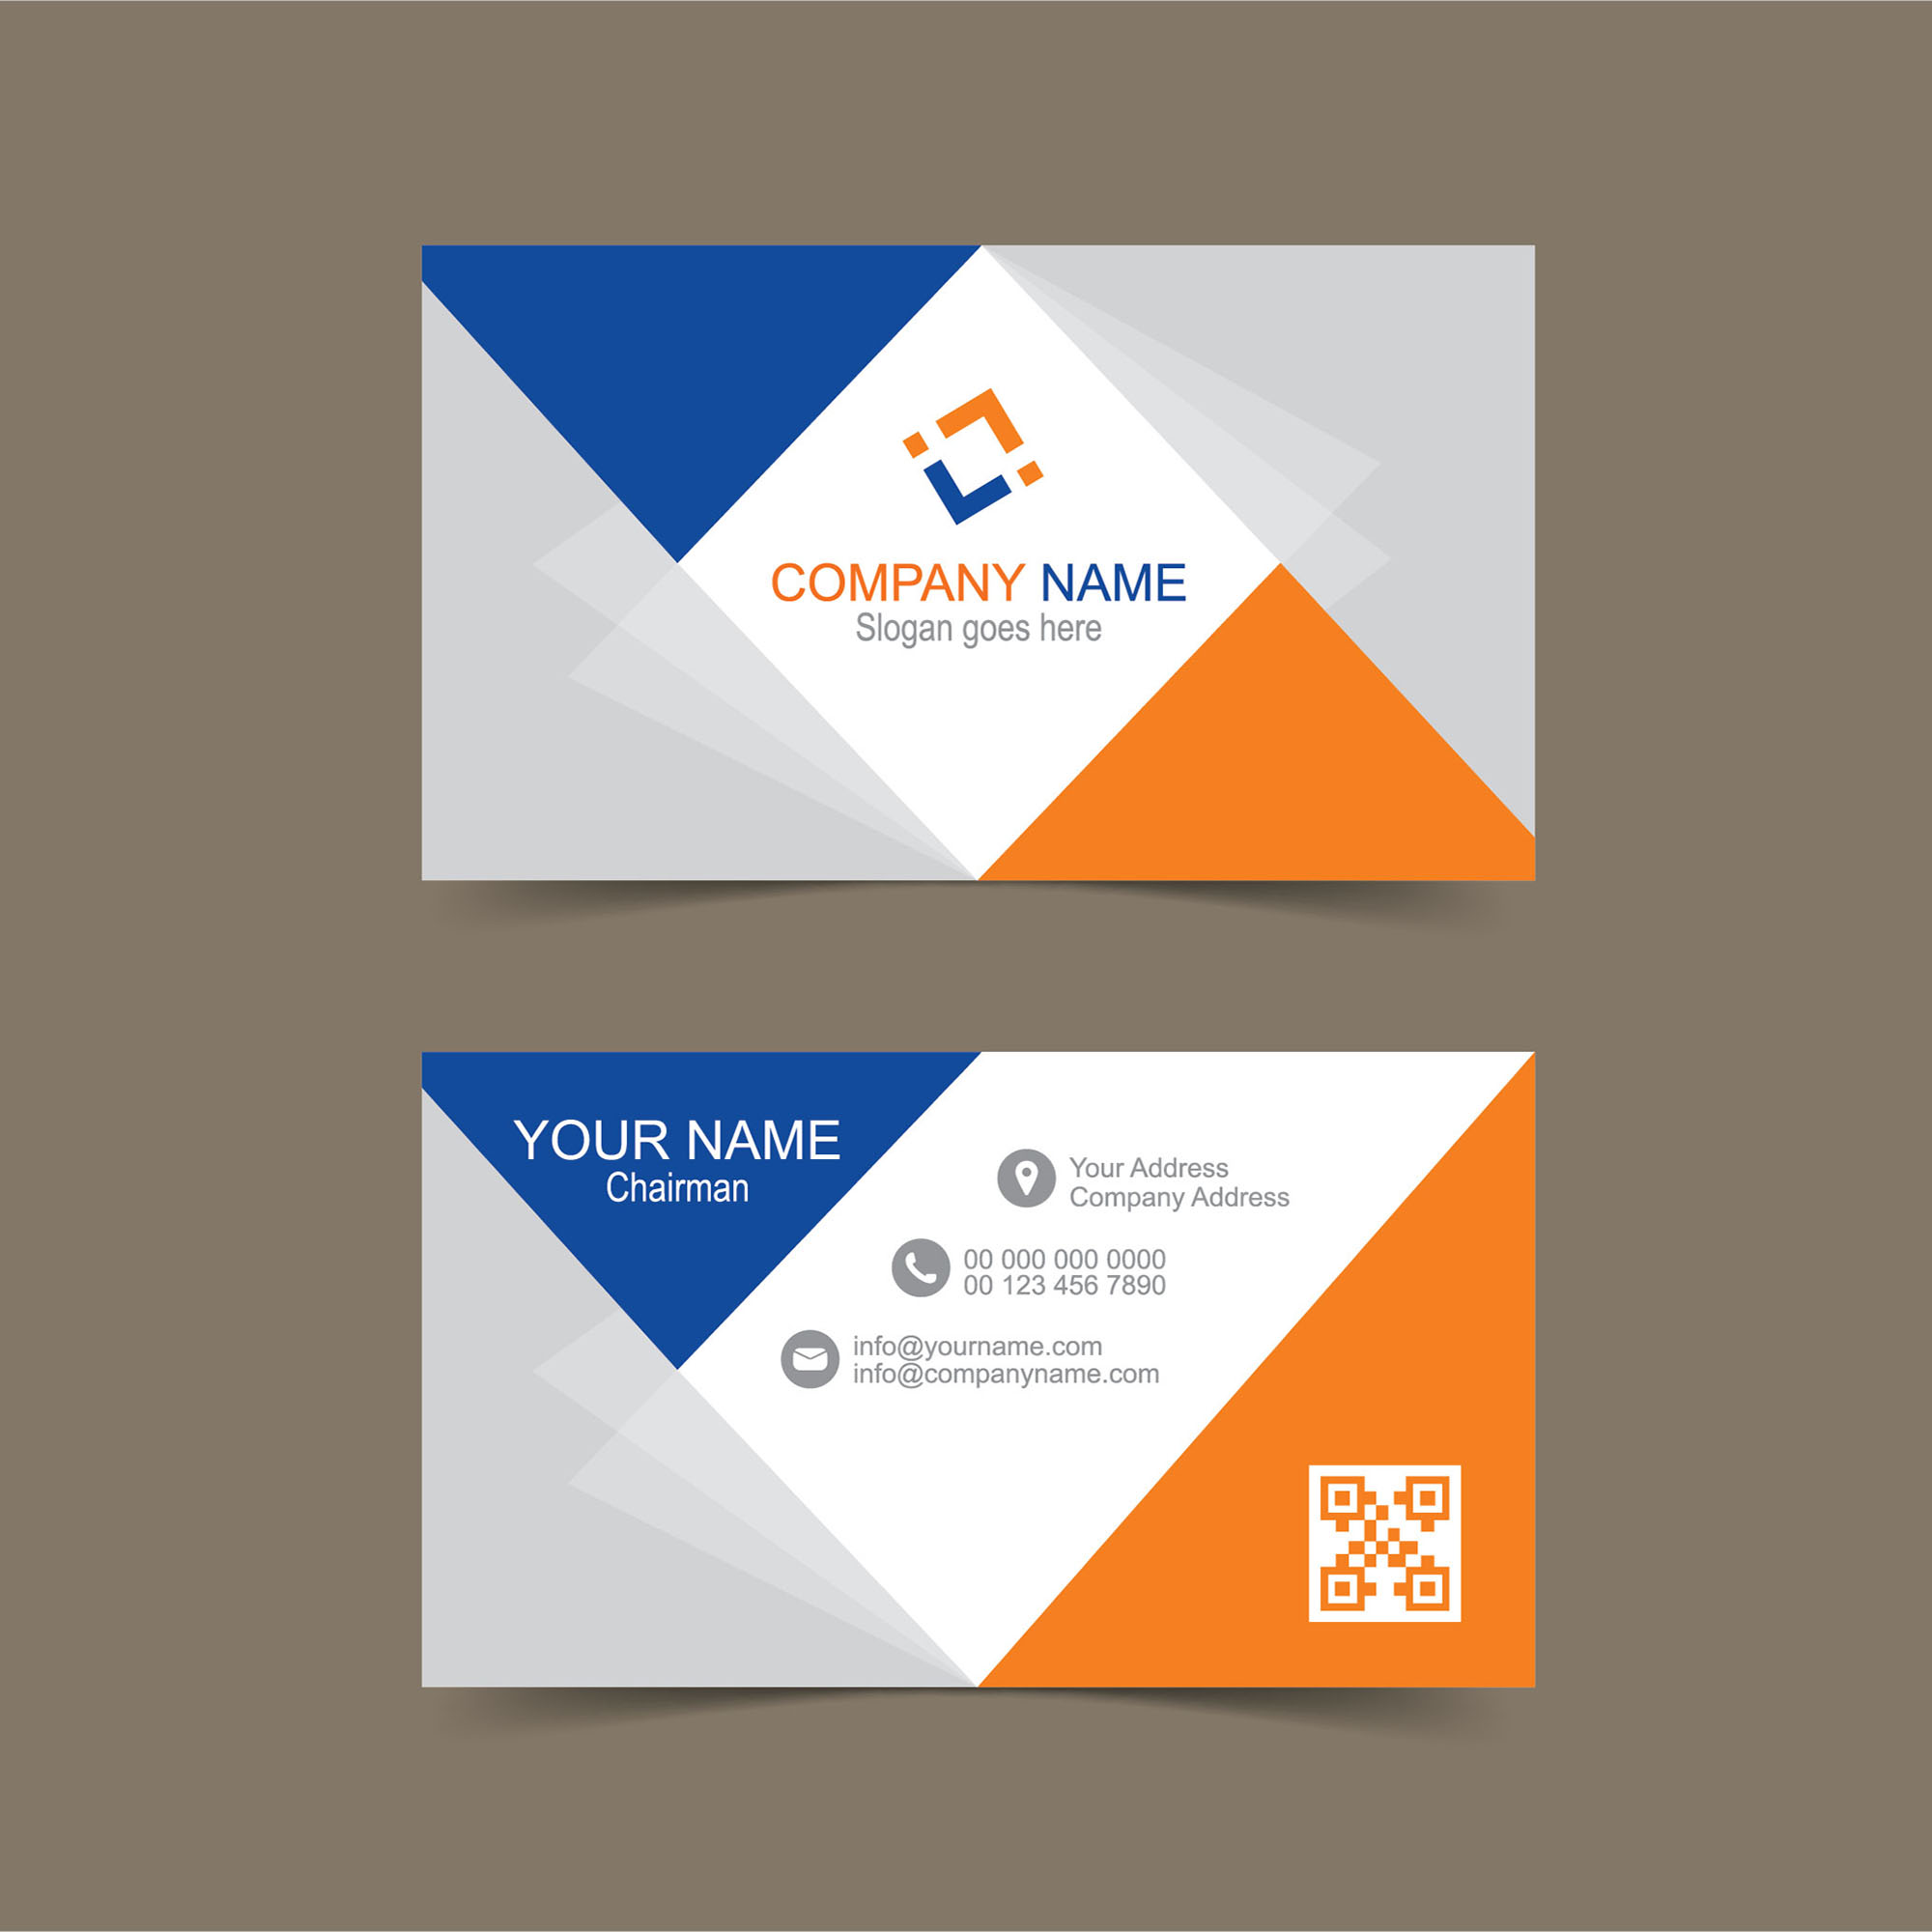 Free business card template for illustrator wisxi business card business cards business card design business card template design templates accmission Images